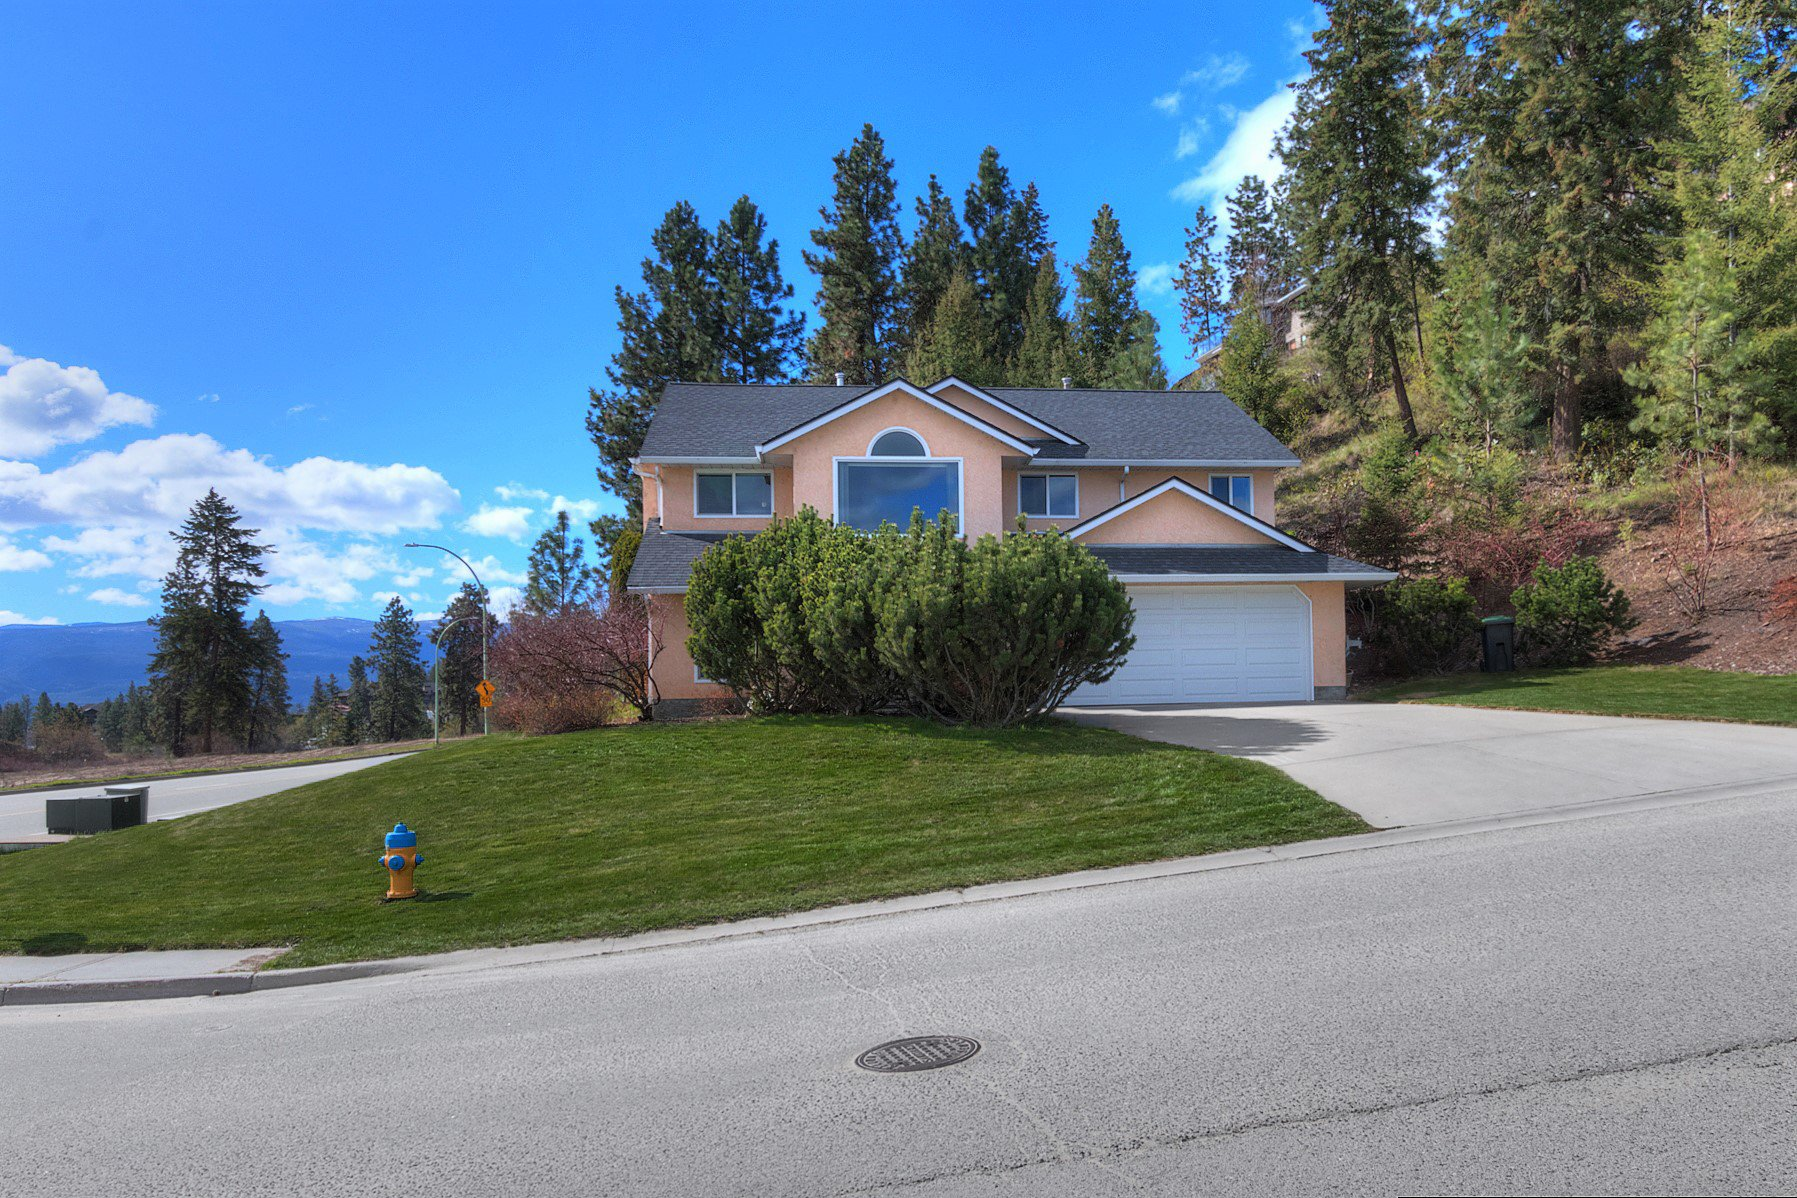 Main Photo: 2455 Silver Place in Kelowna: Dilworth House for sale (Central Okanagan)  : MLS®# 10196612